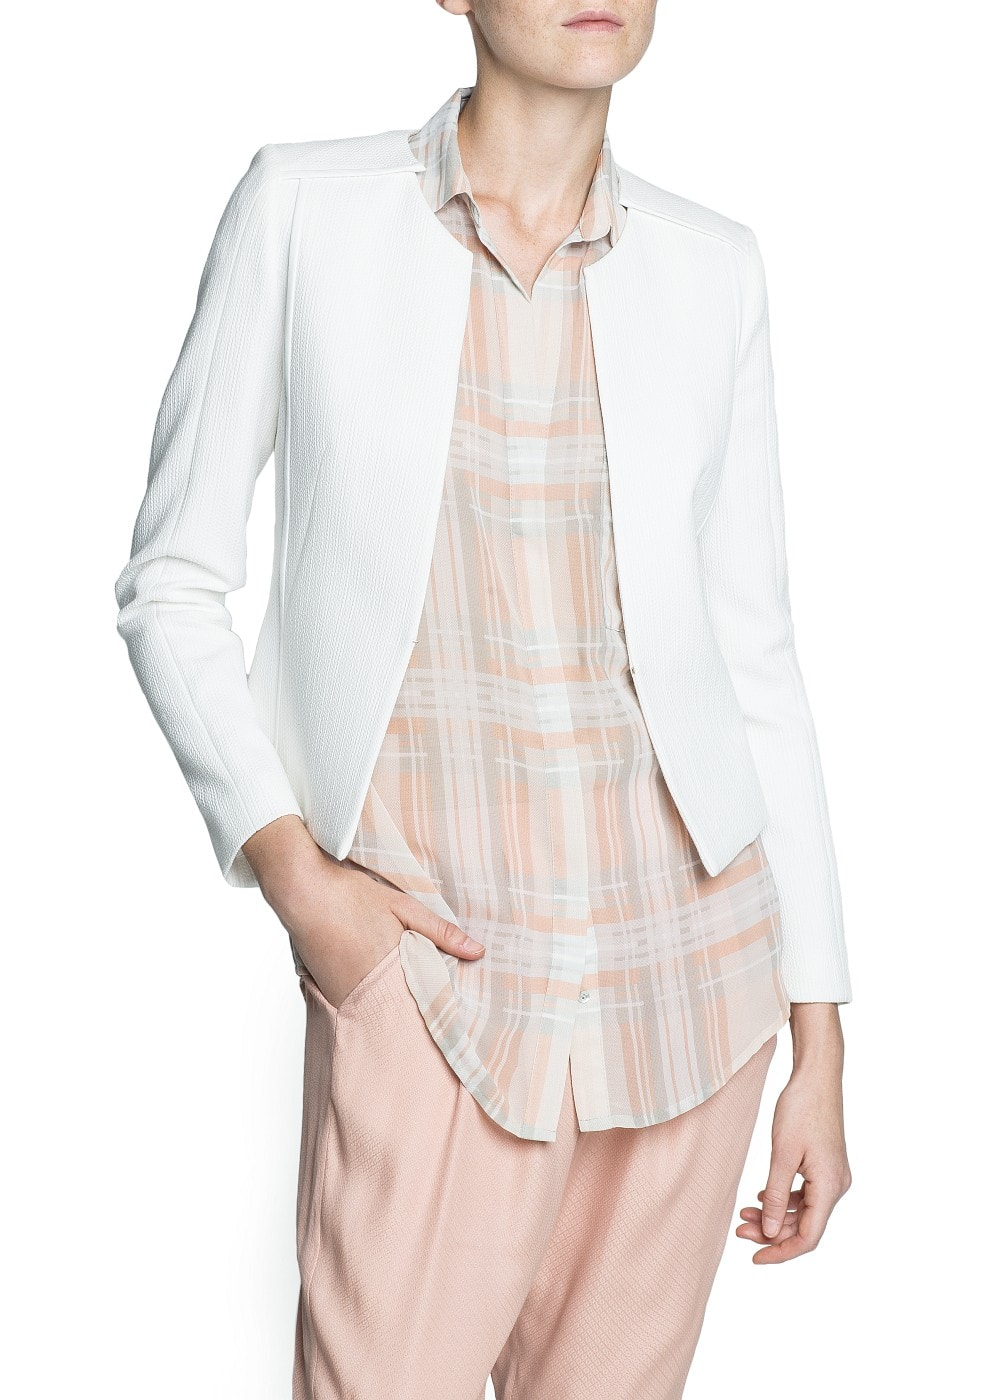 Textured structured jacket